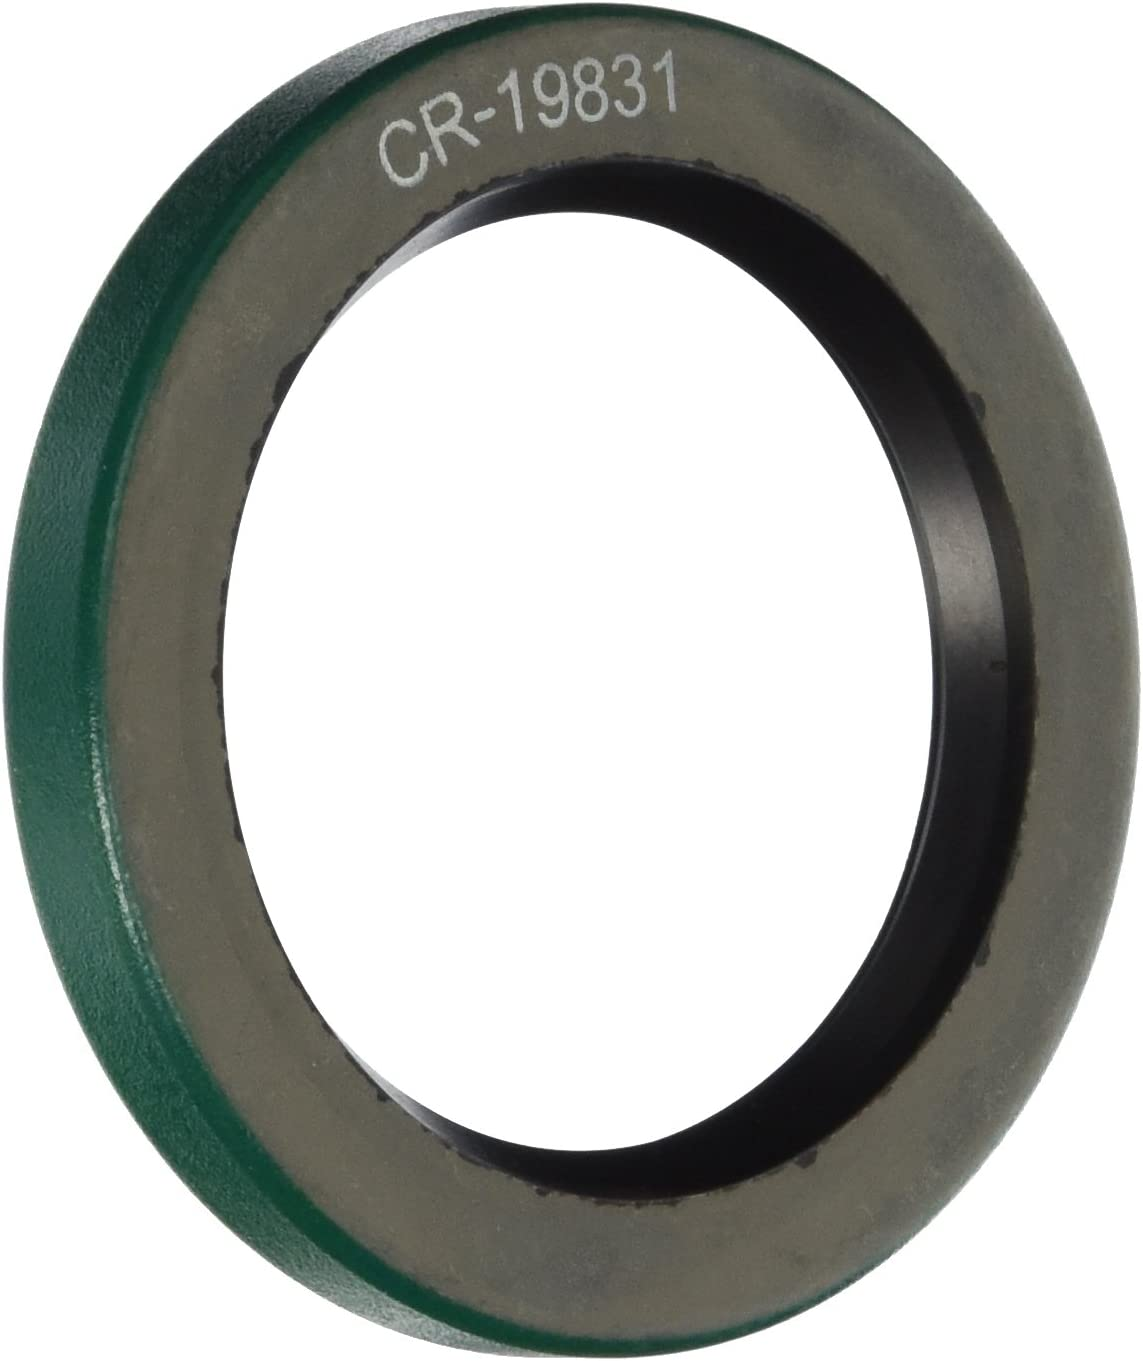 SKF 19831 Oklahoma City Spring new work one after another Mall Shaft Seal 2x2-3 4x5 16